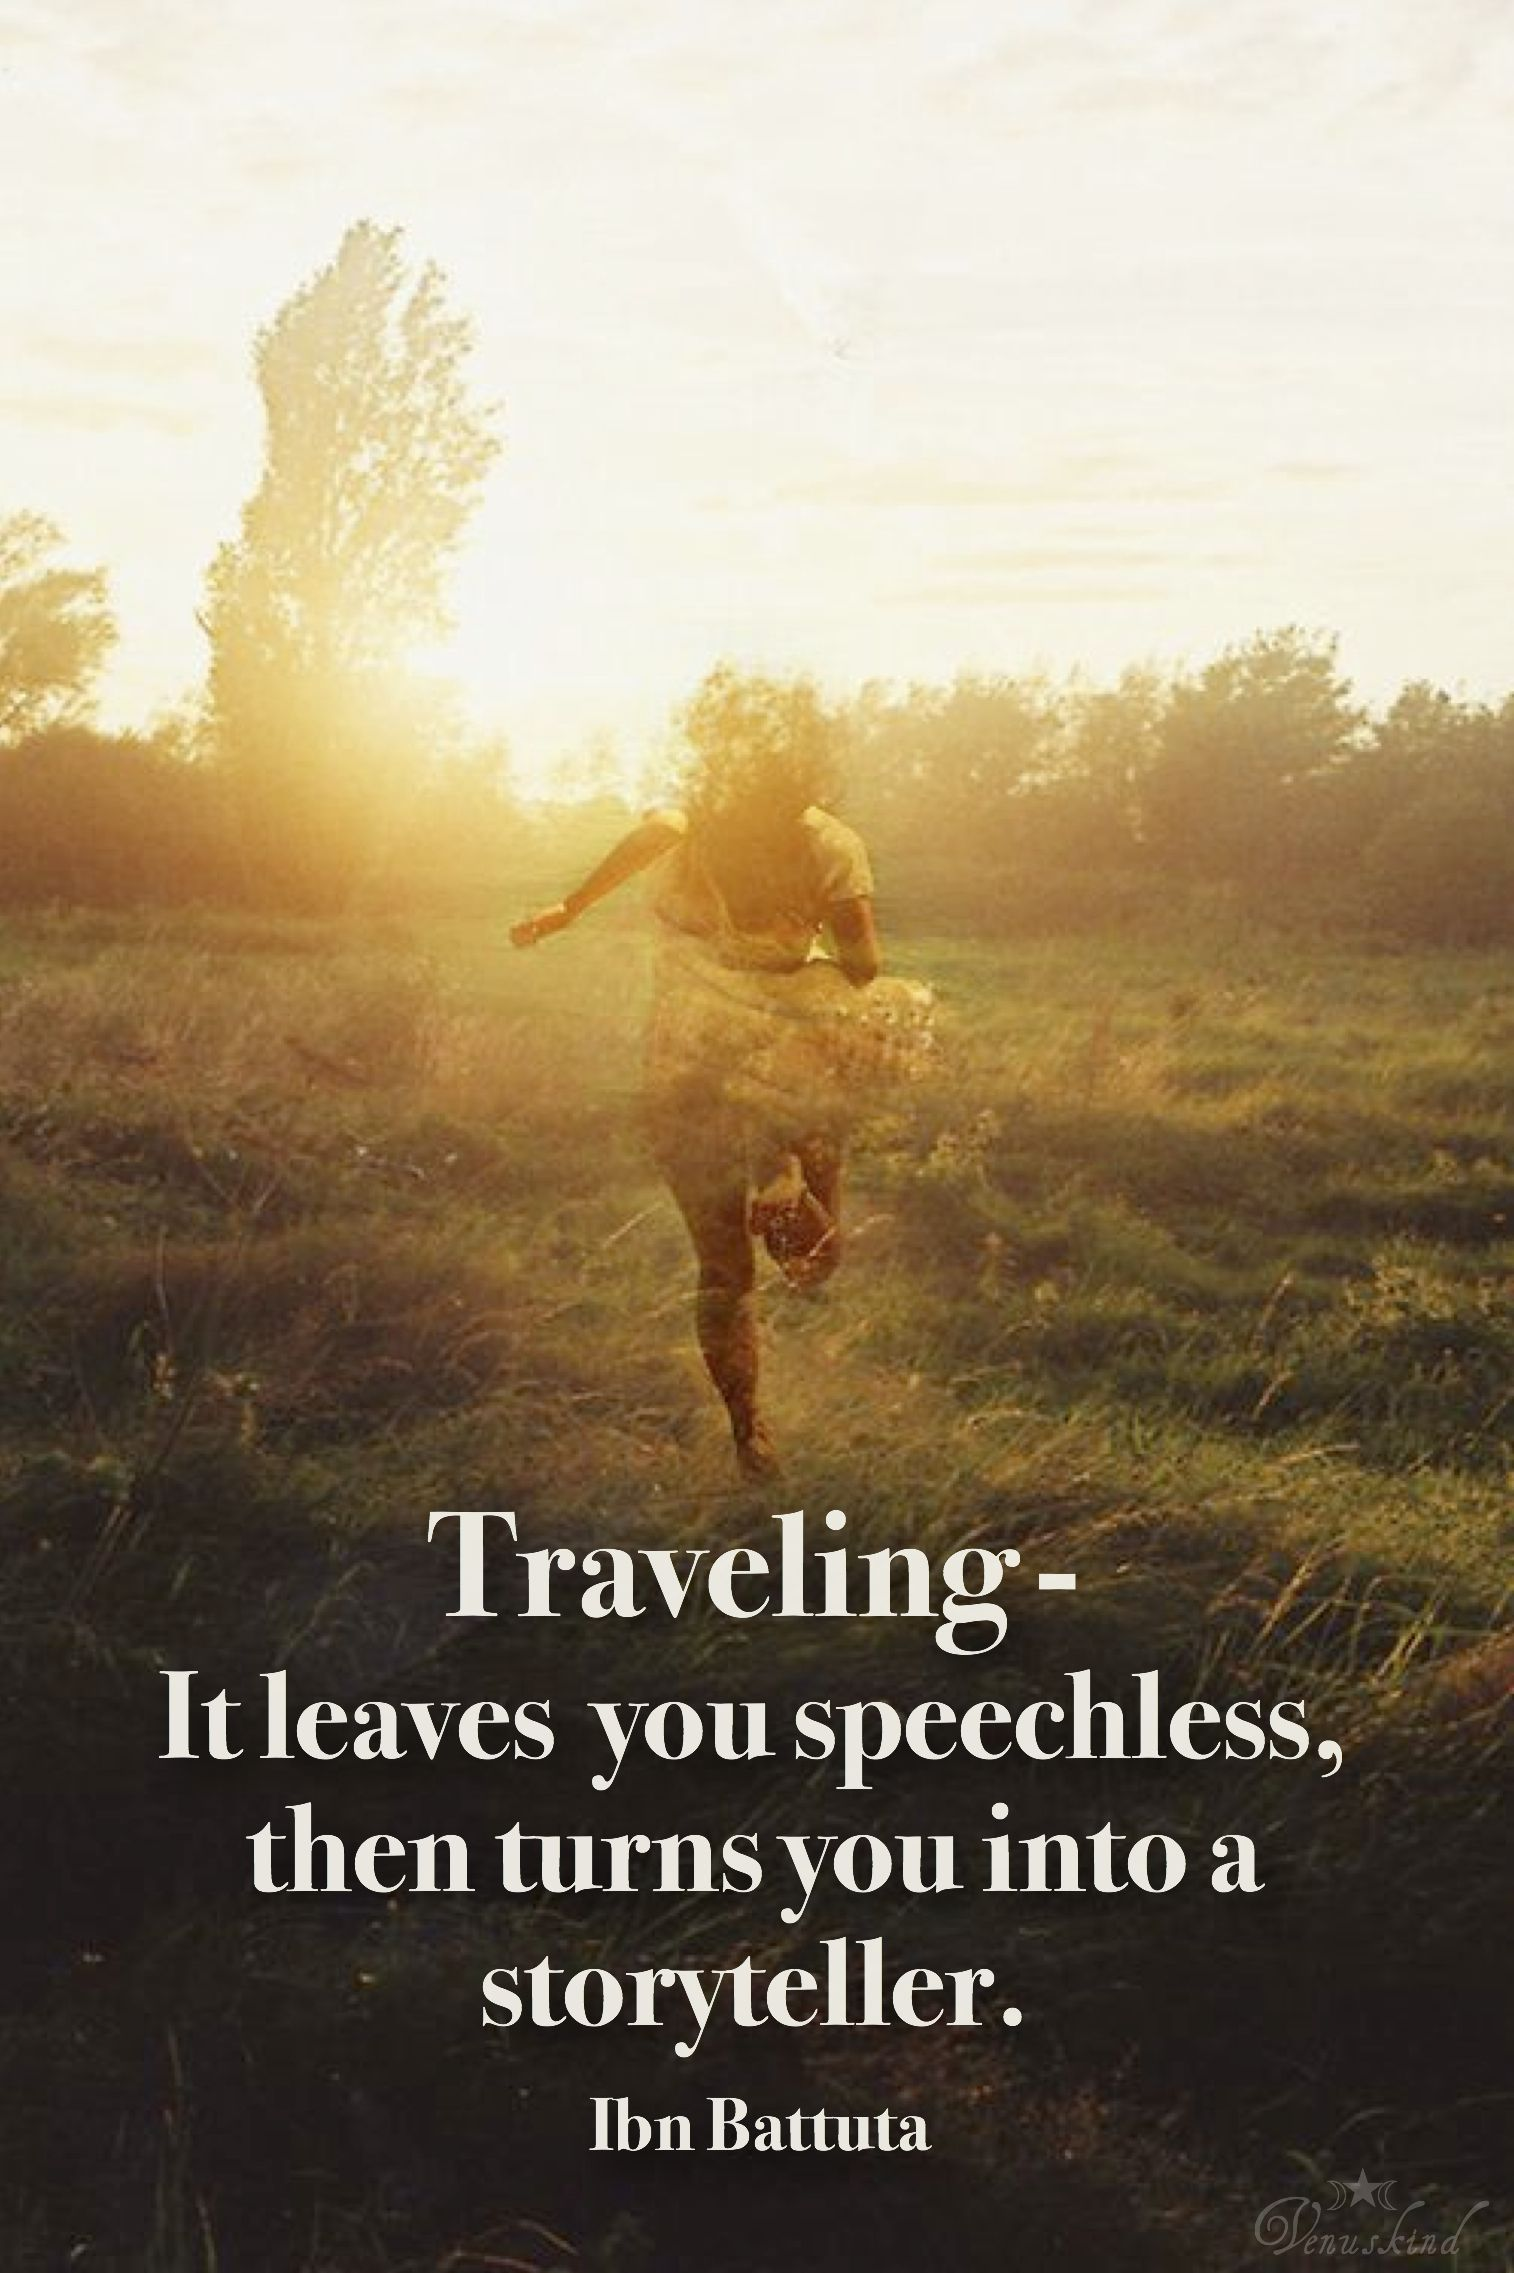 Traveling leaves you speechless and turns you into a storyteller #seetheworld